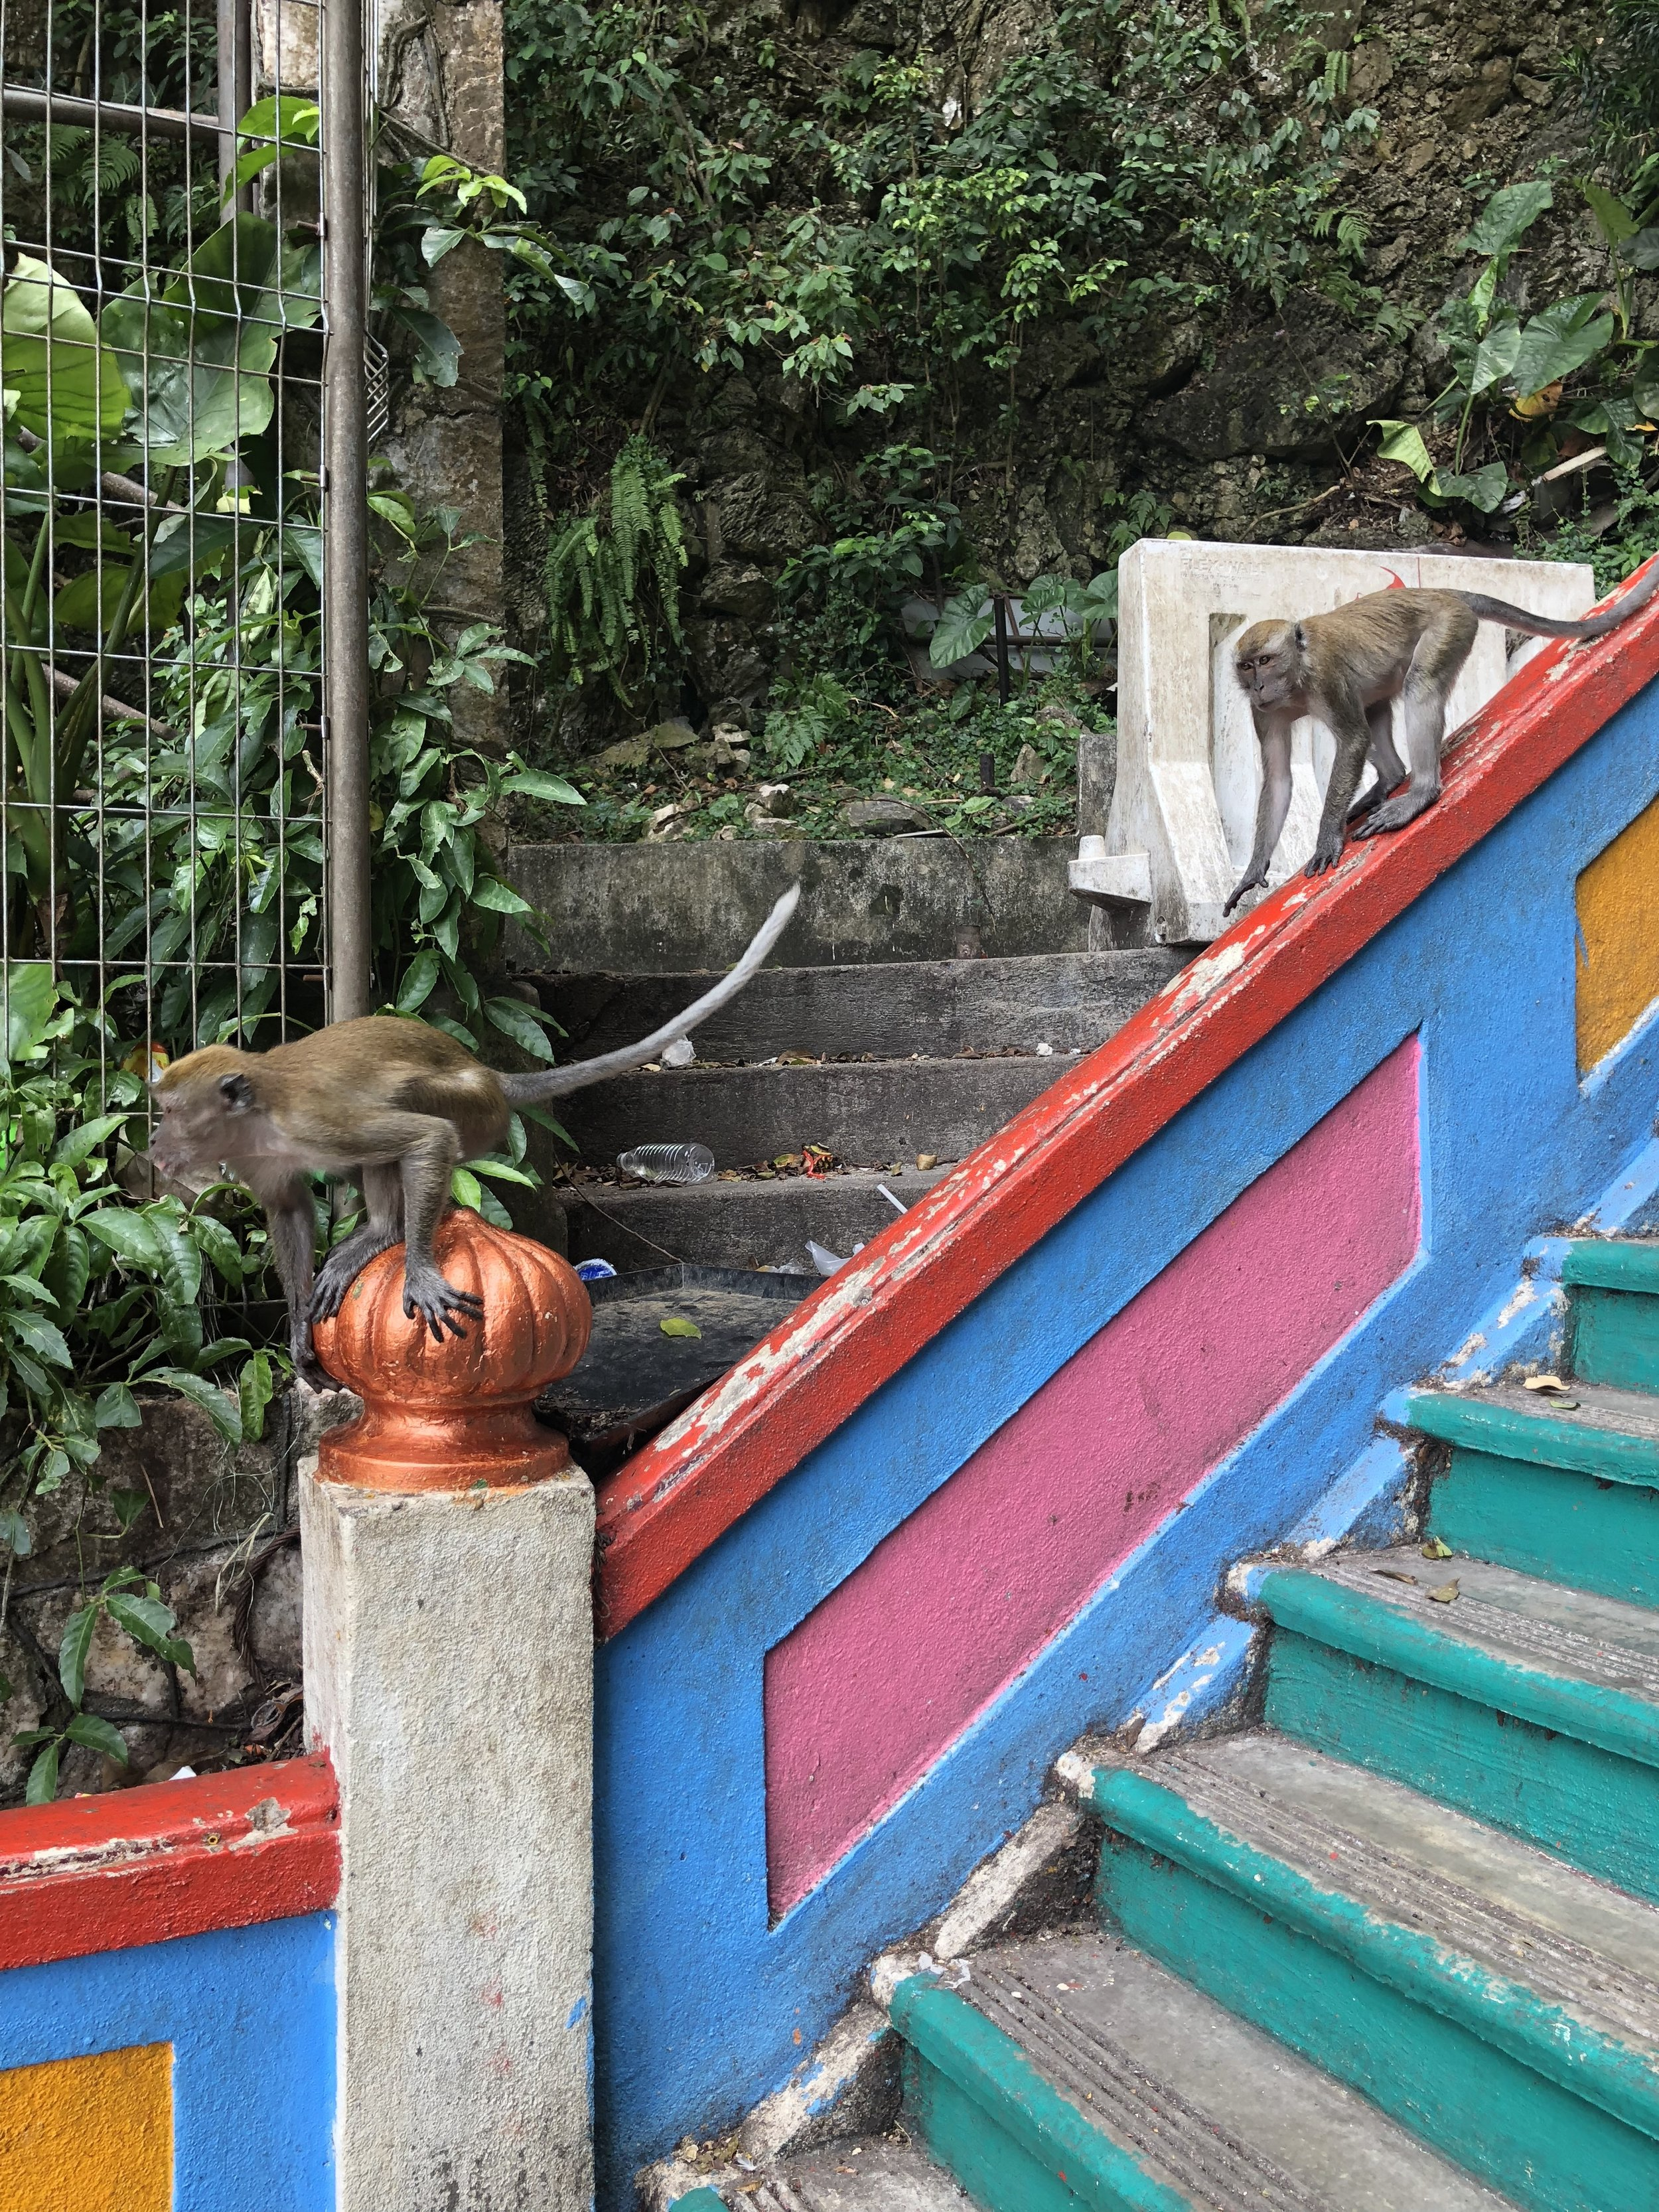 On the way up the stairs, I got a quick snapshot of the macaques running down the stairs!